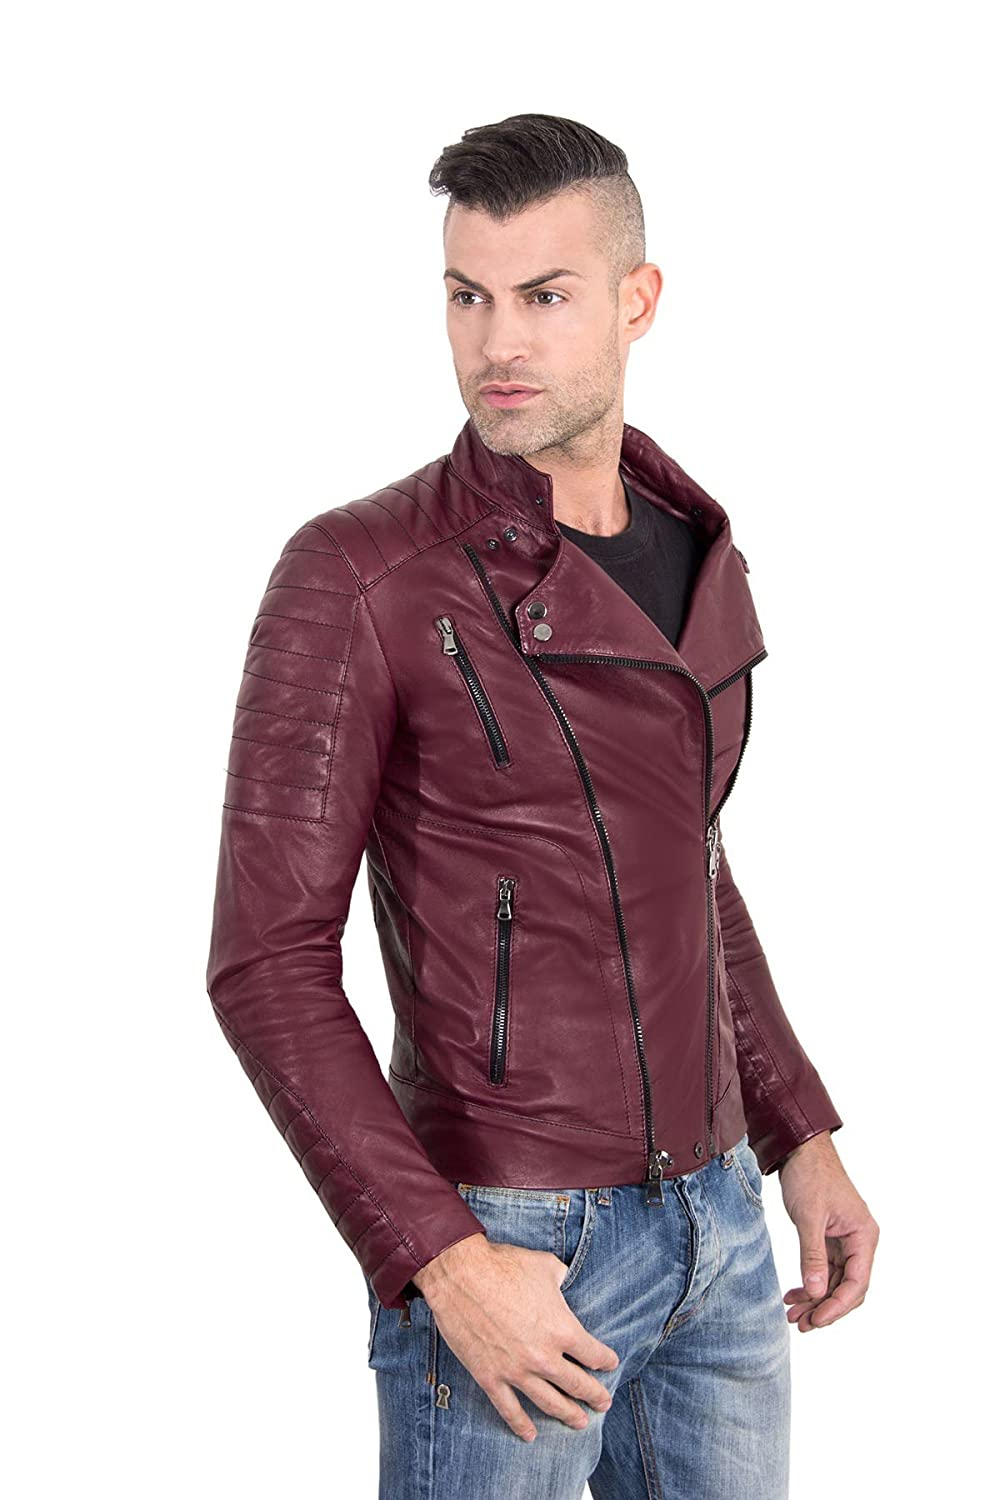 D'Arienzo Giacca in Pelle Uomo Made in Italy Bordeaux Vera